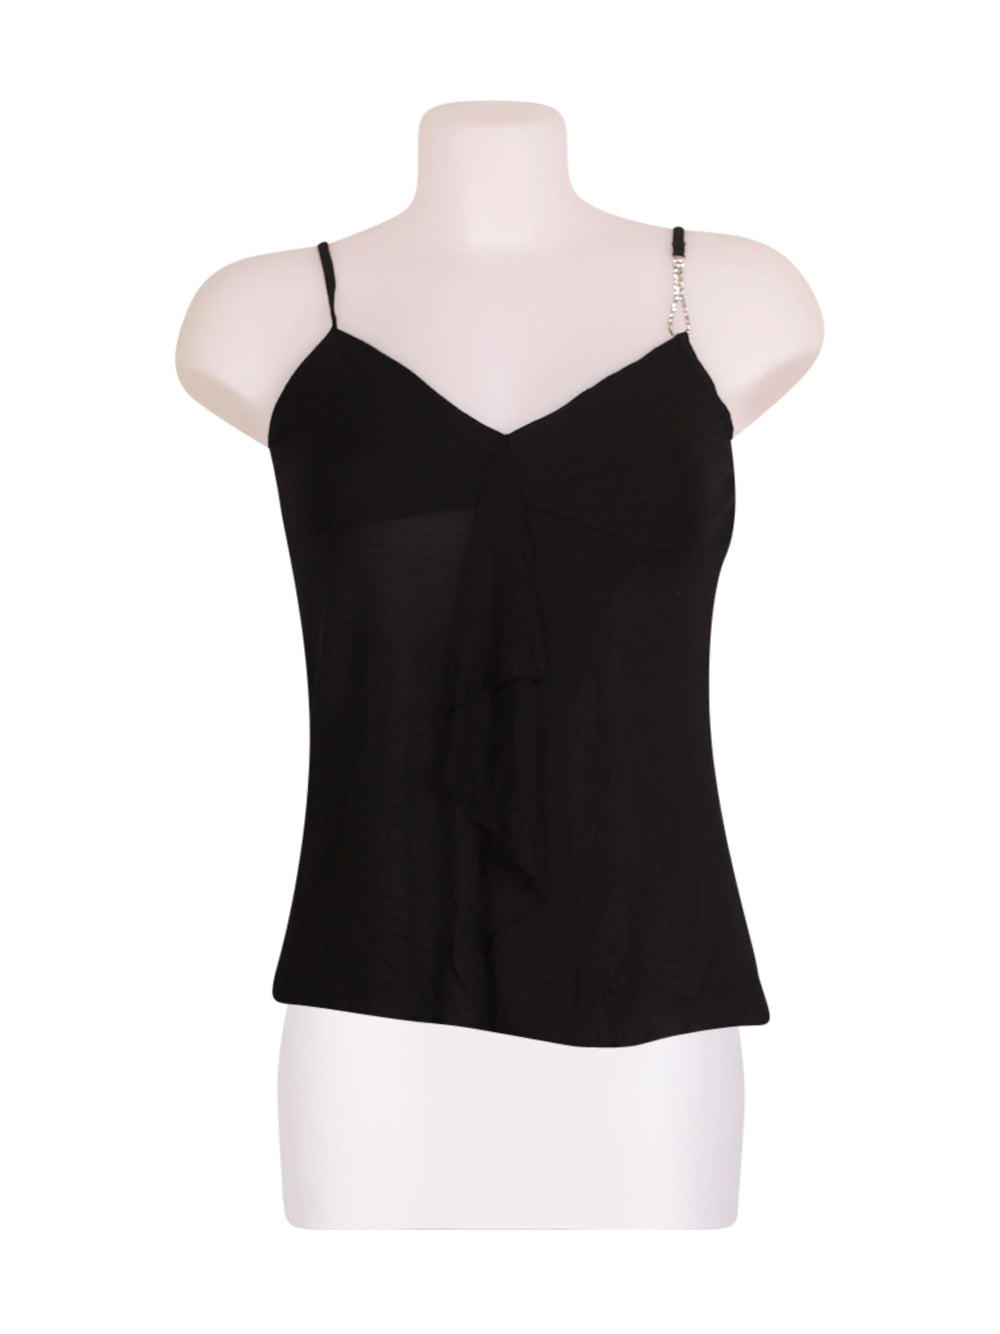 Front photo of Preloved Sisley Black Woman's sleeveless top - size 8/S